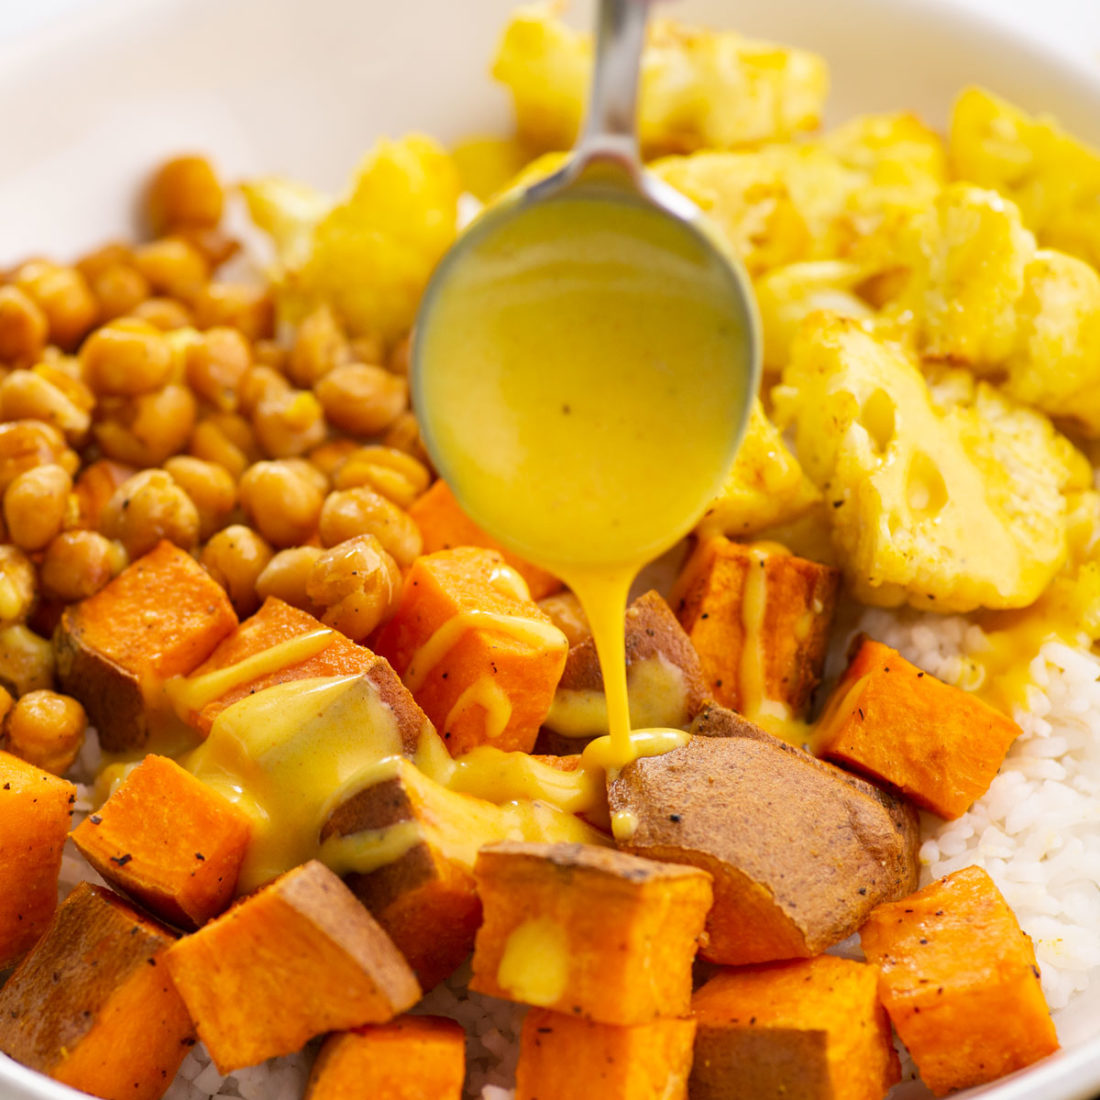 pouring sunshine sauce onto a rice bowl with sweet potatoes, cauliflower, and chickpeas